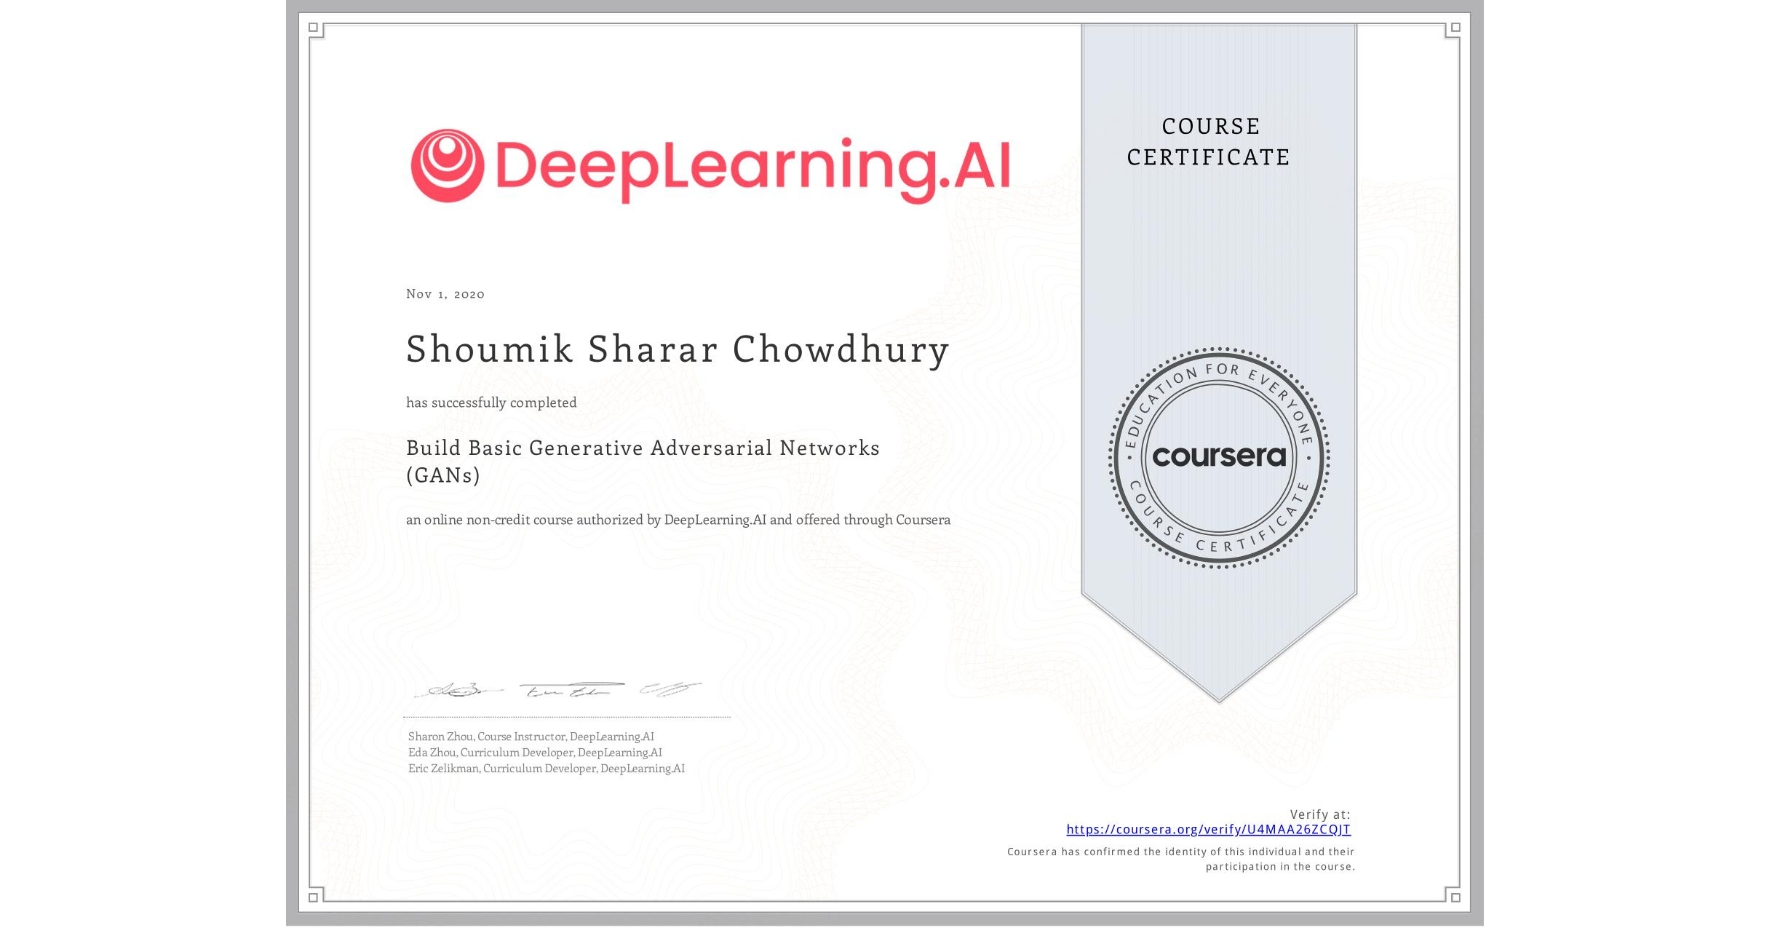 View certificate for Shoumik Sharar Chowdhury, Build Basic Generative Adversarial Networks (GANs), an online non-credit course authorized by DeepLearning.AI and offered through Coursera